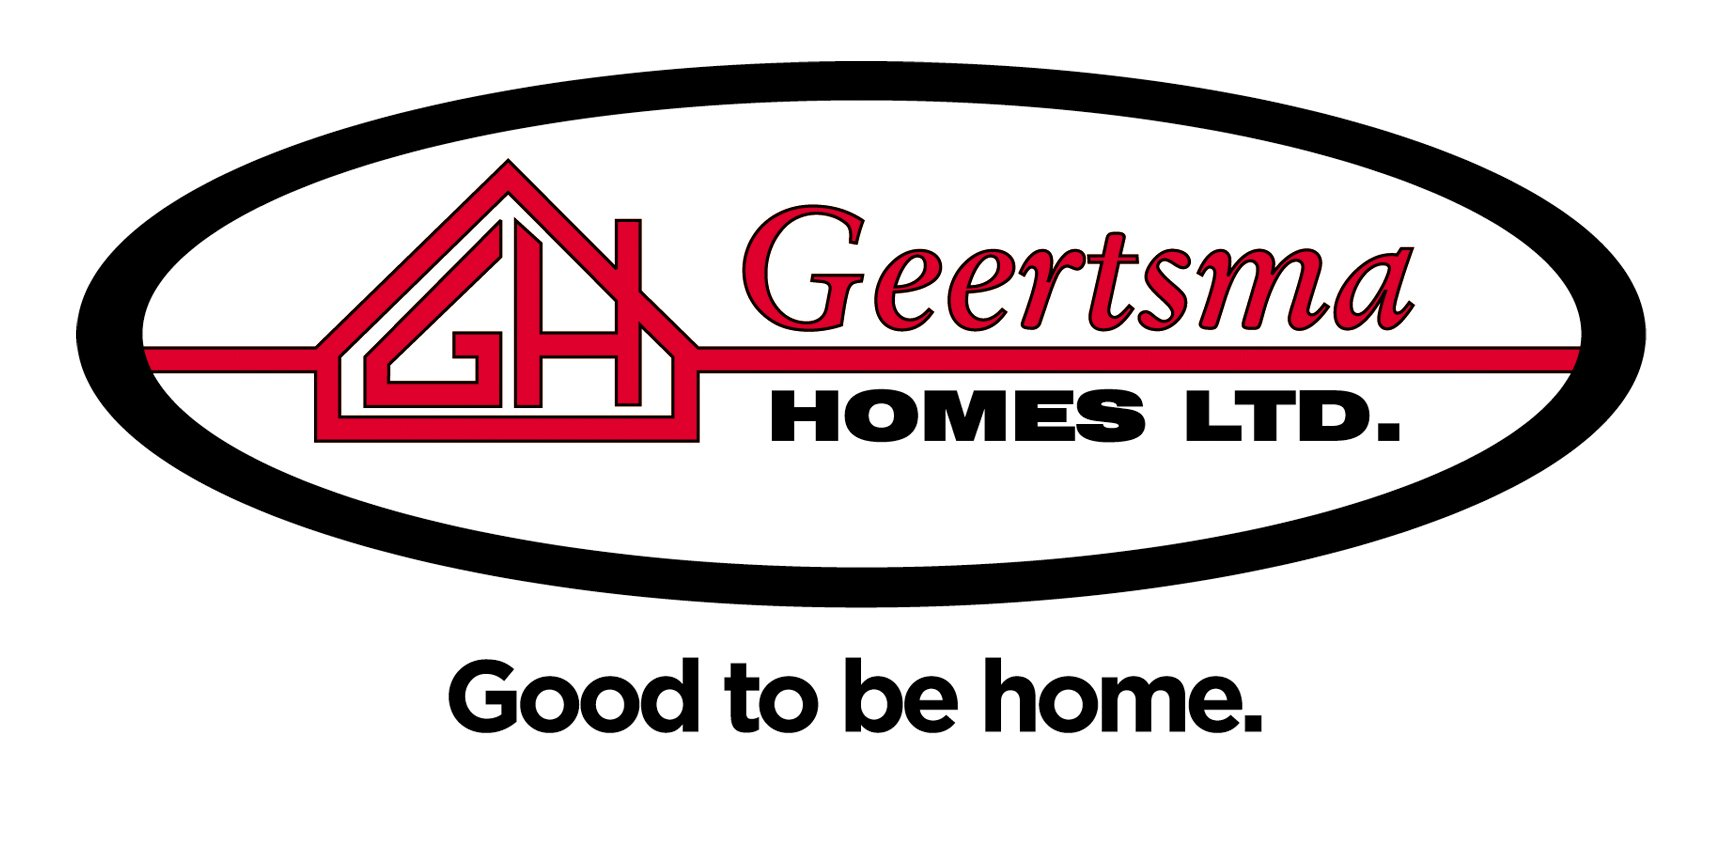 Geertsma Homes Ltd.